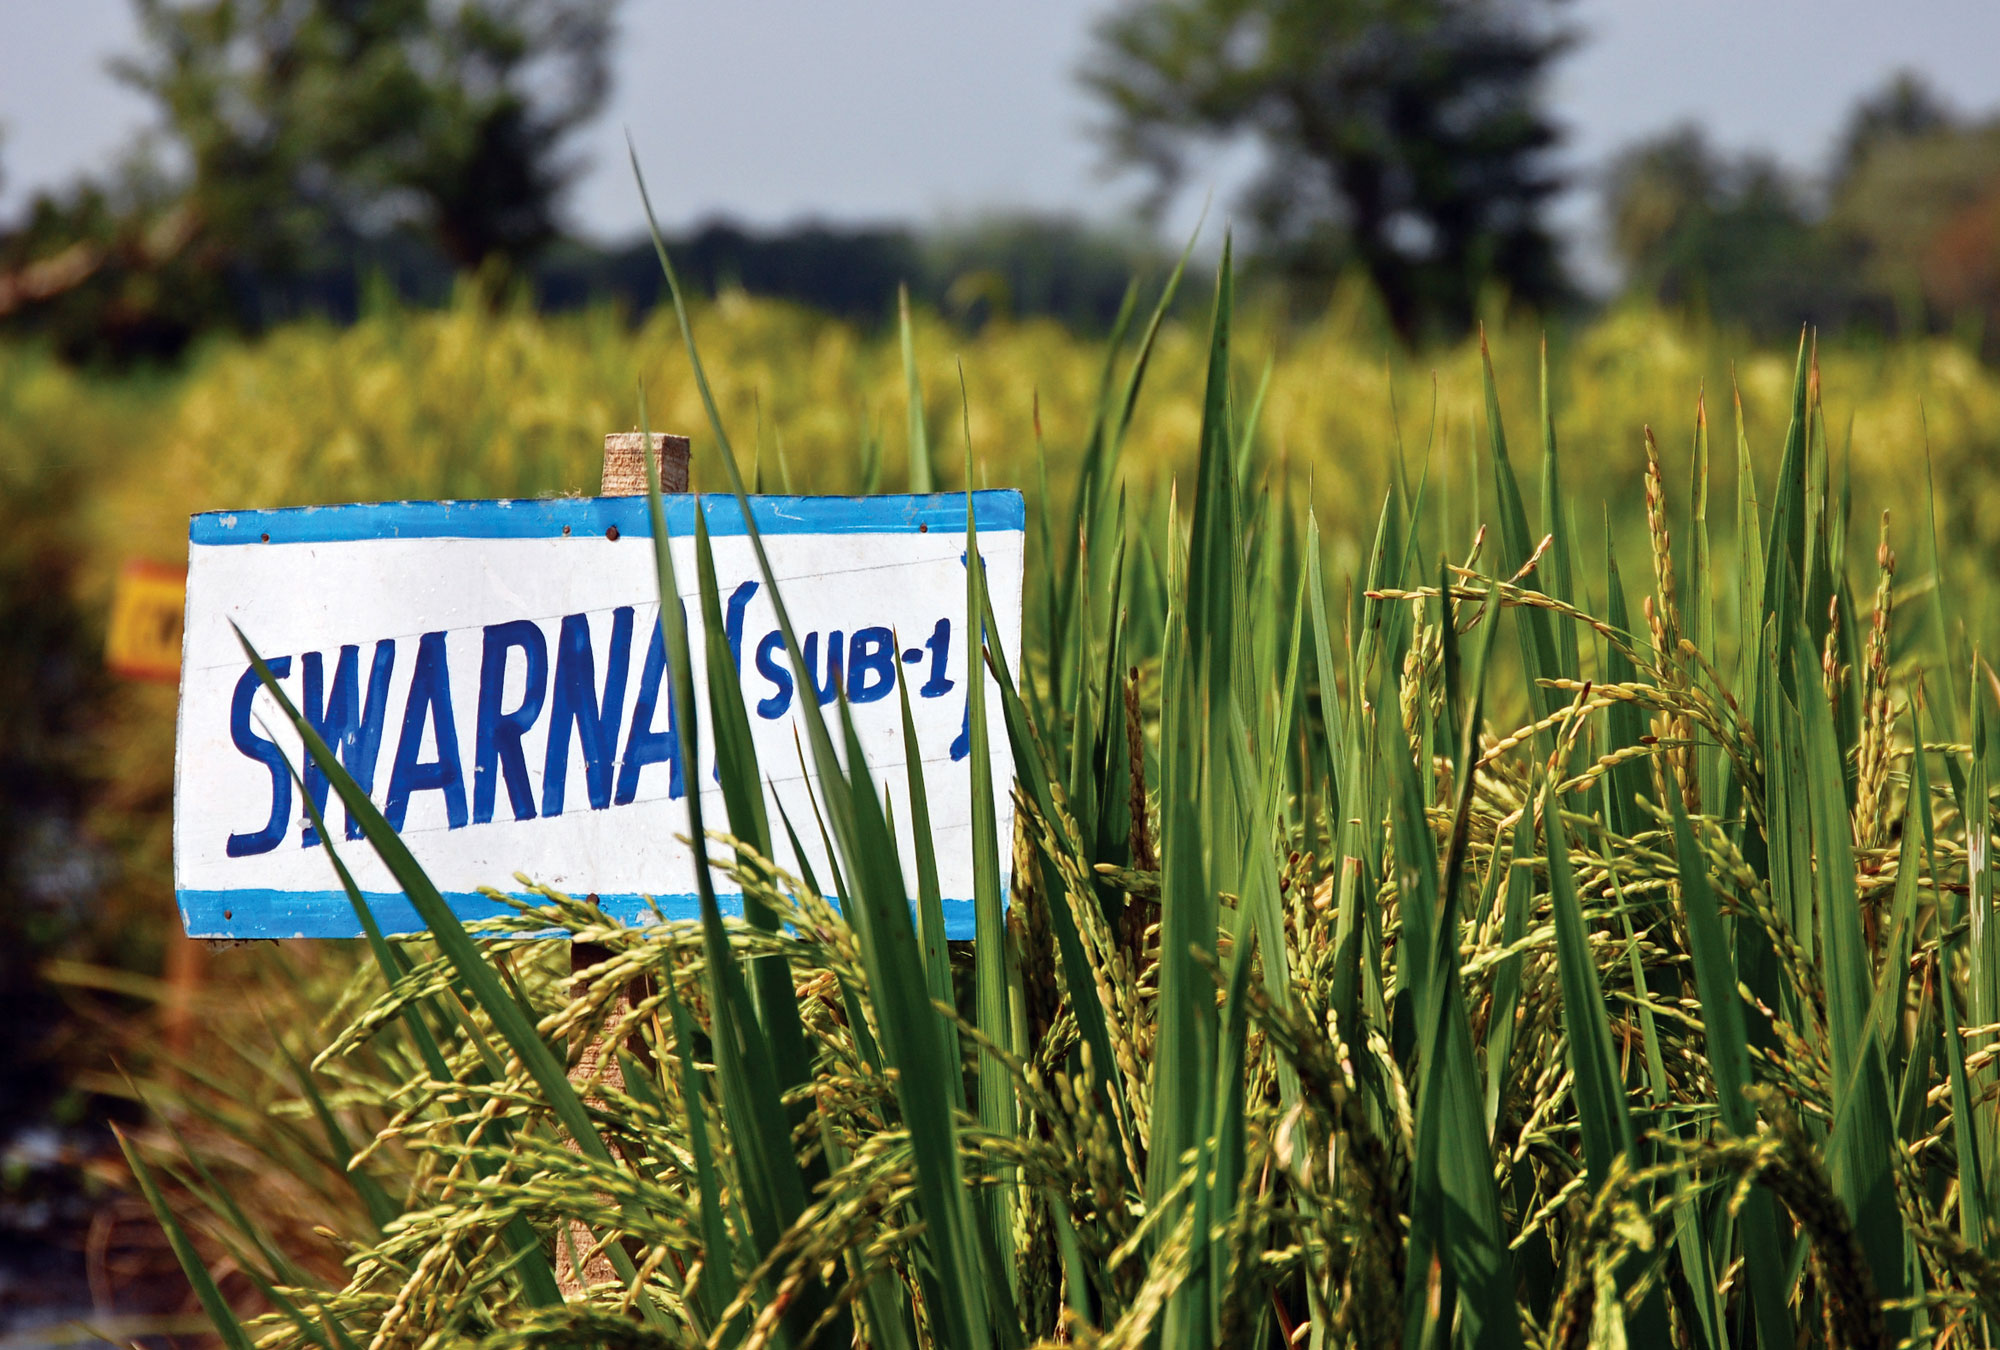 Sign in rice field reads: Swarna Sub1